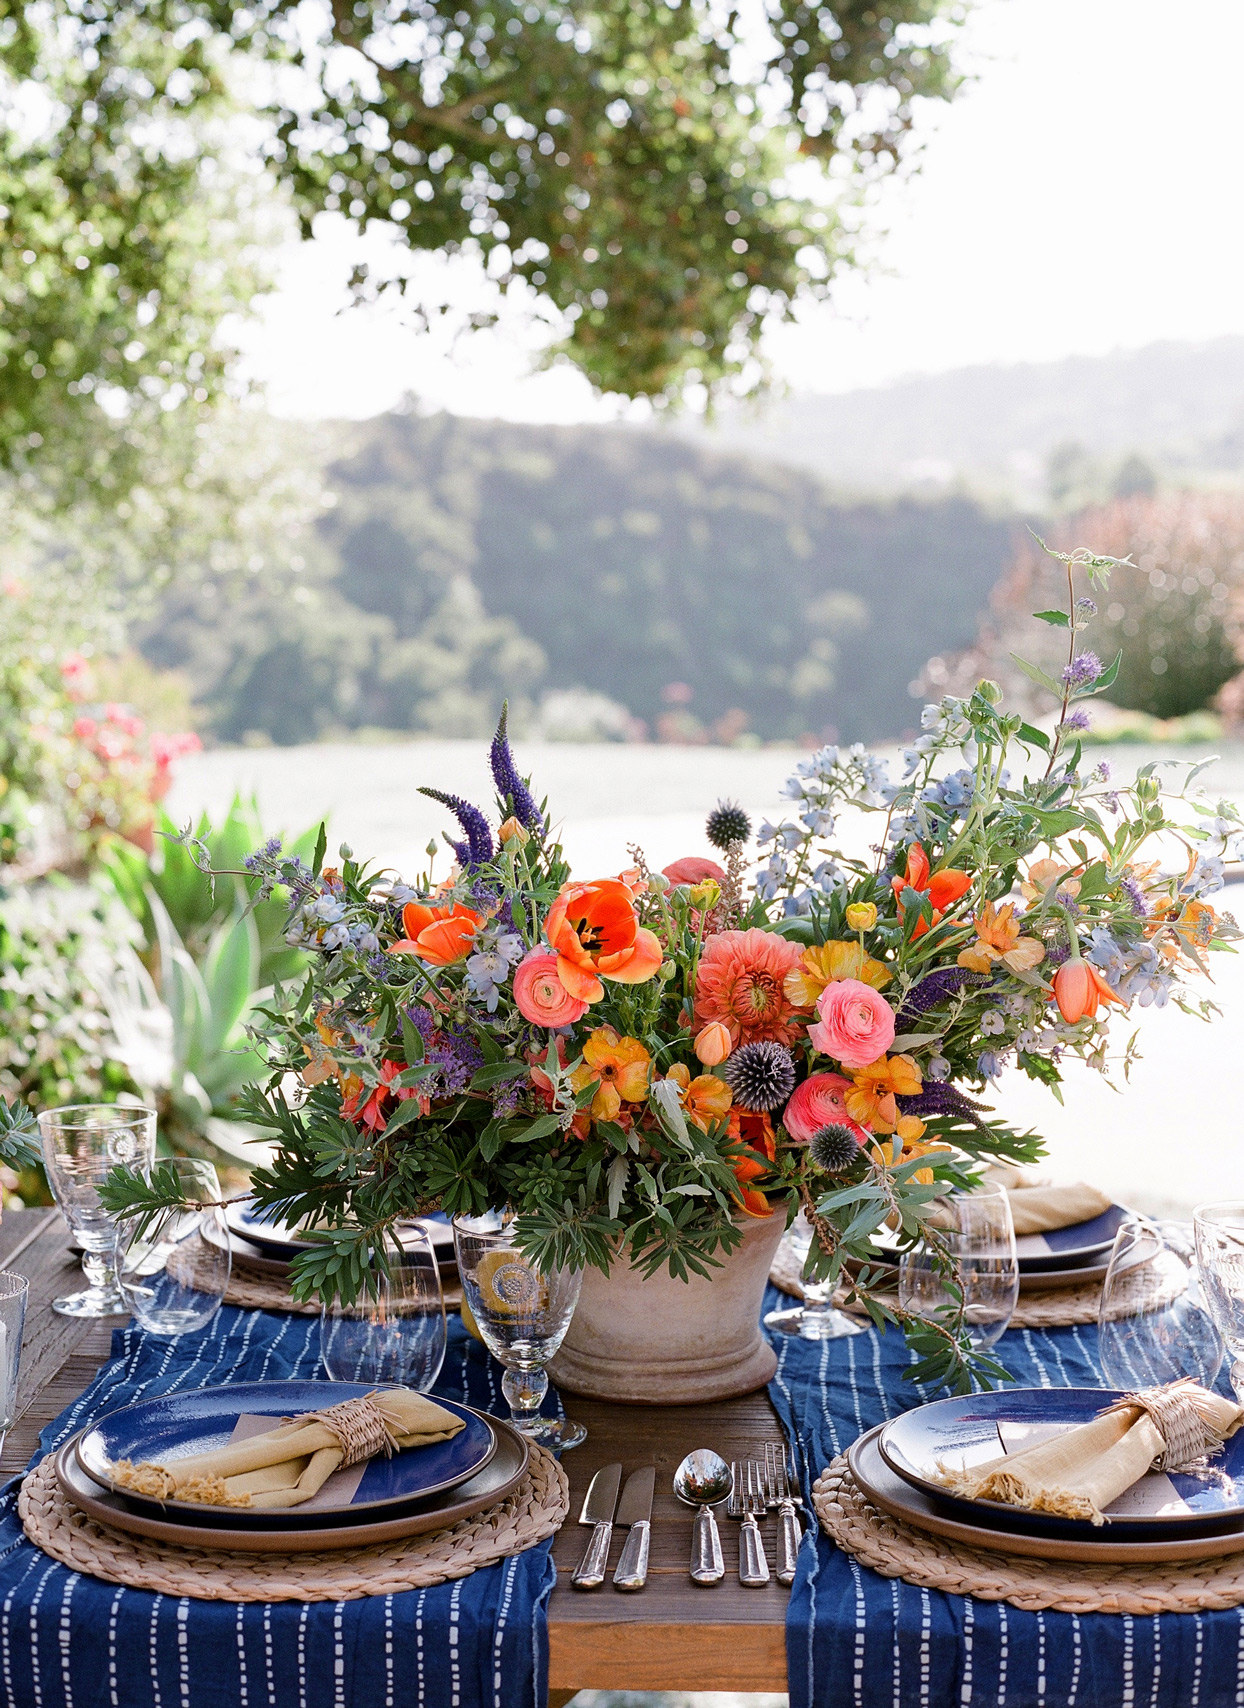 multicolor floral wedding rehearsal dinner centerpiece on wooden table with blue and white linens